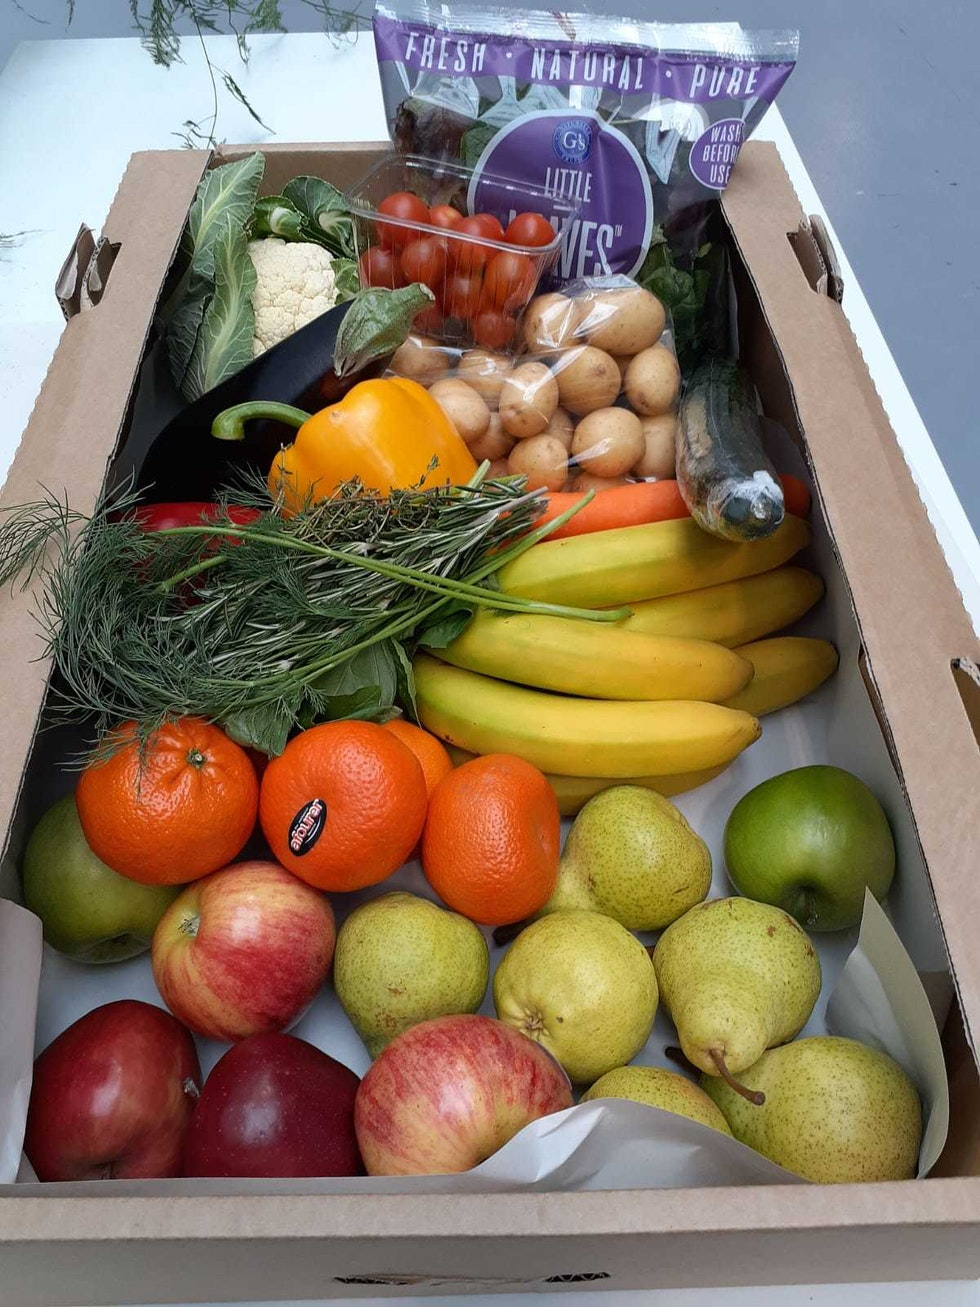 Home deliveries of fresh fruit & veg from New Covent Garden Market businesses